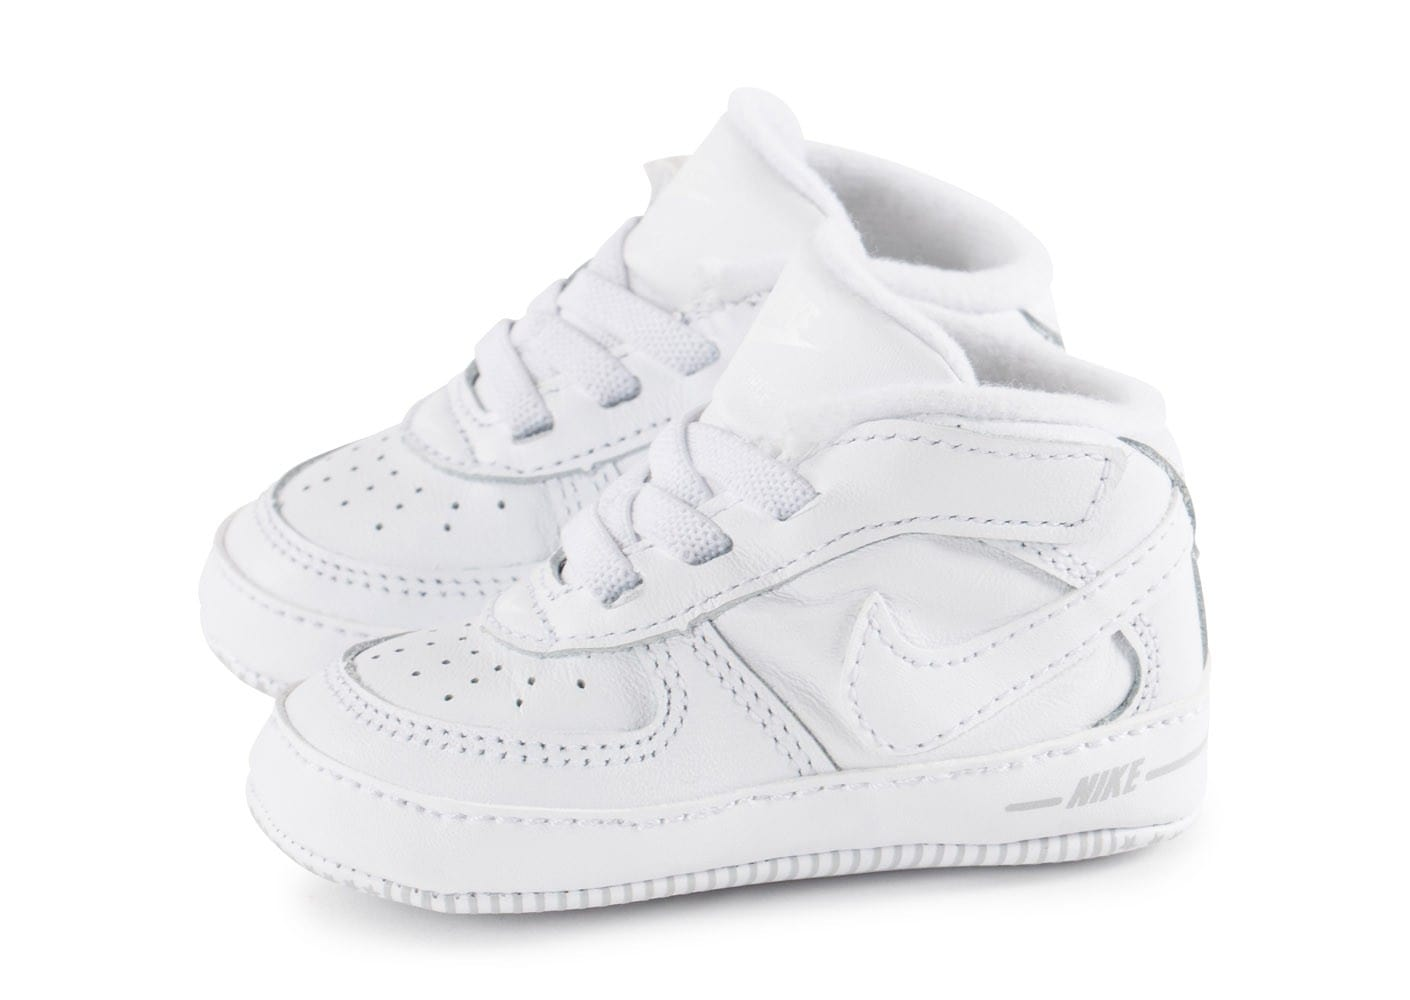 reasonably priced wholesale outlet check out nike air force one bebe,air force 1 blanche et bleu homme nike